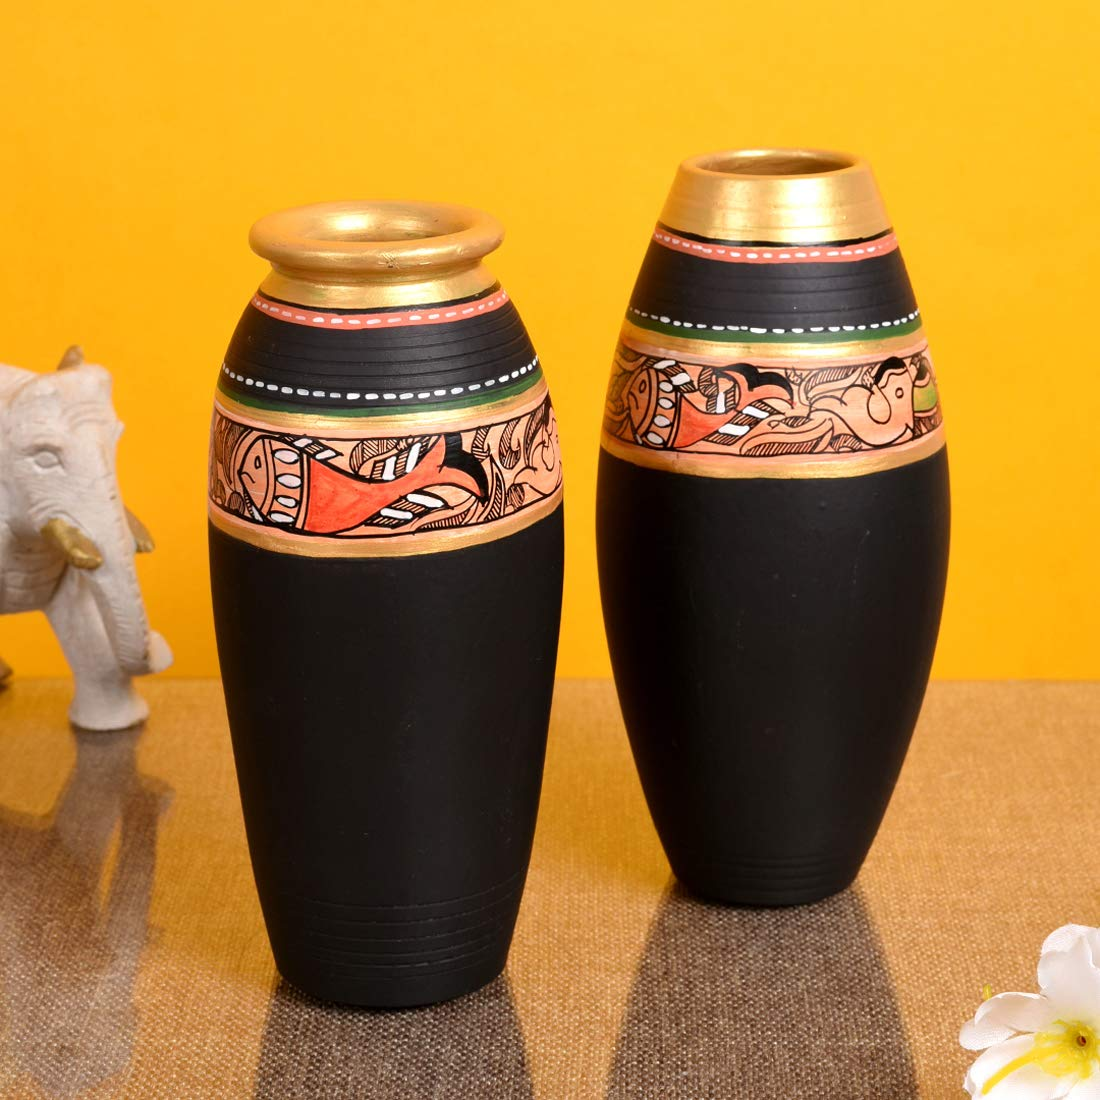 Buy Aakriti Art Creations Terracotta Flower Vase Pot 1 6 4 X 3 Inch Pot 2 6 4 X 3 Black Online At Low Prices In India Amazon In